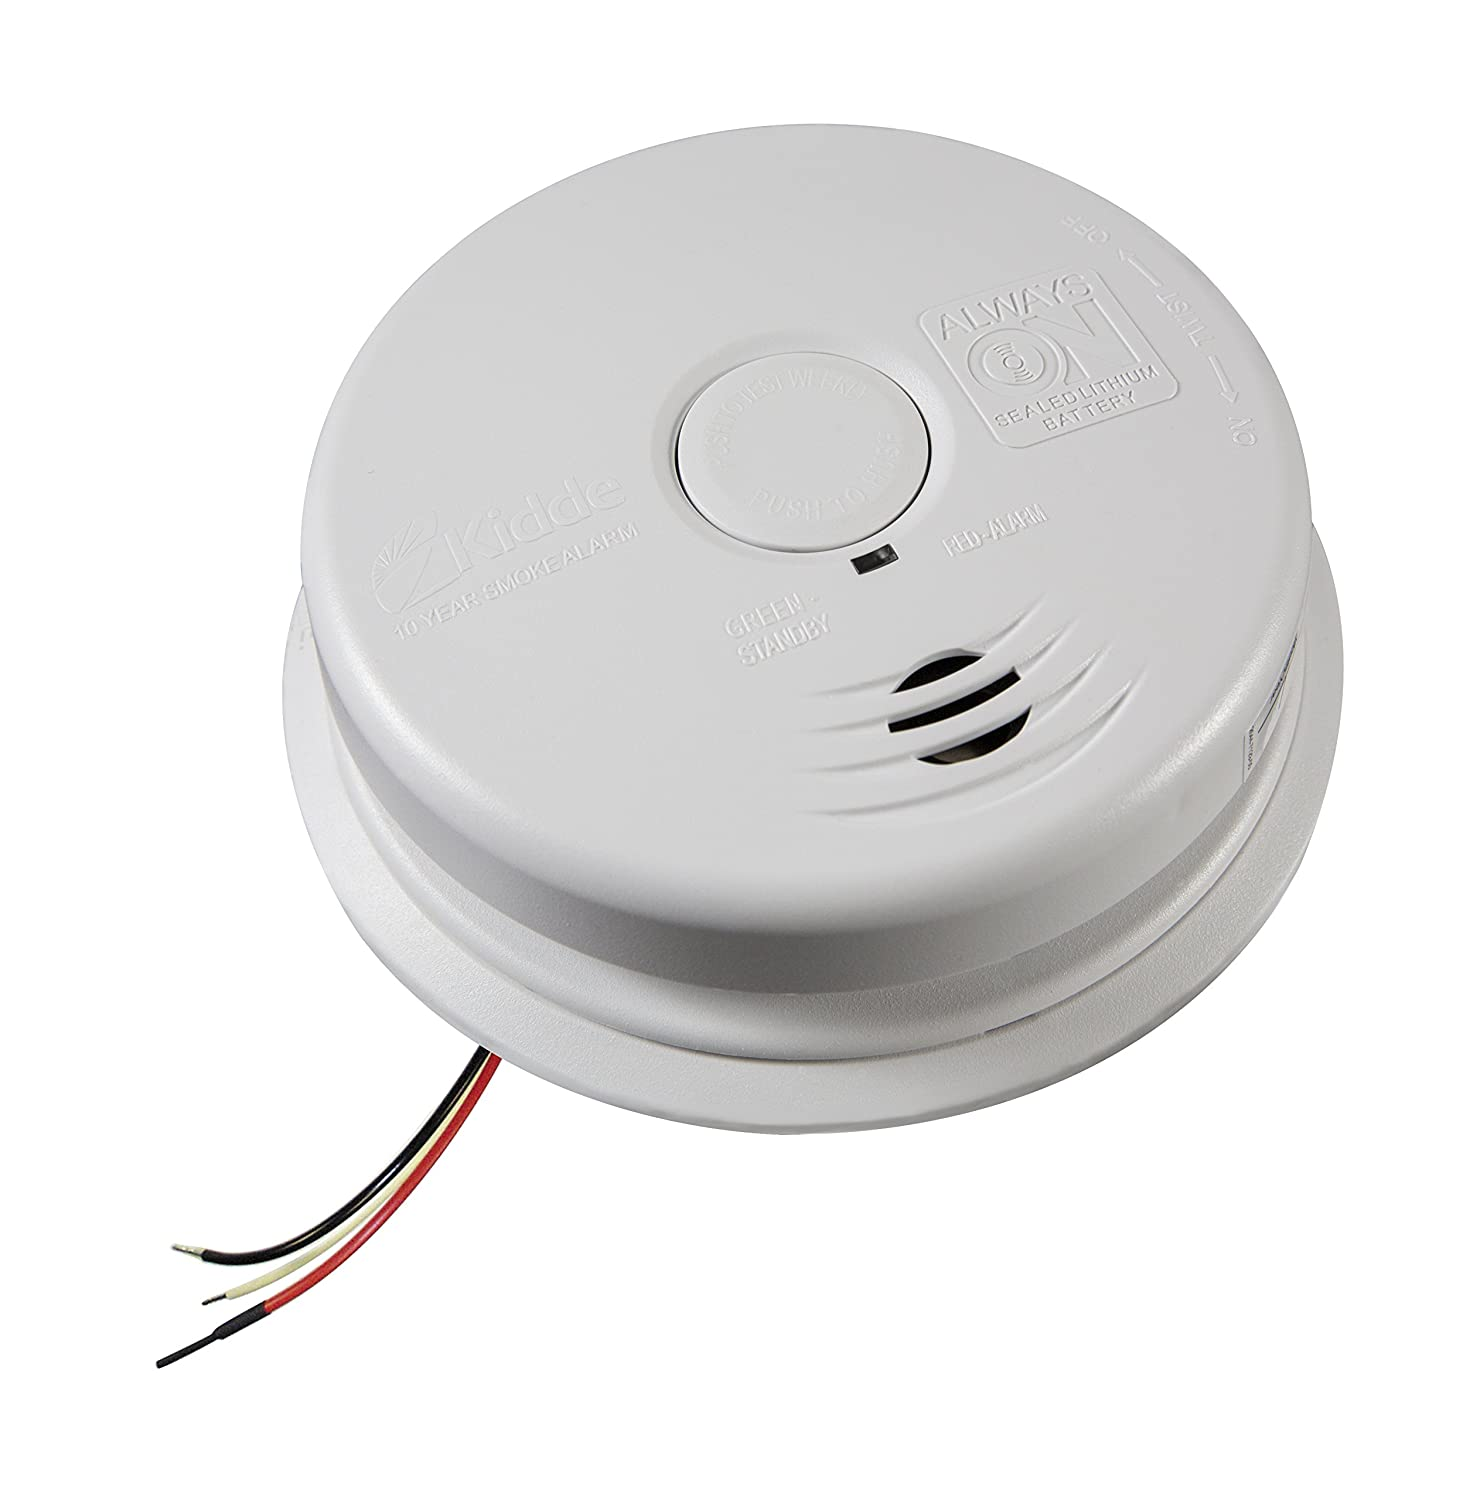 8159mAUhGkL._SL1500_ kidde i12010s hardwired smoke alarm amazon com  at mifinder.co